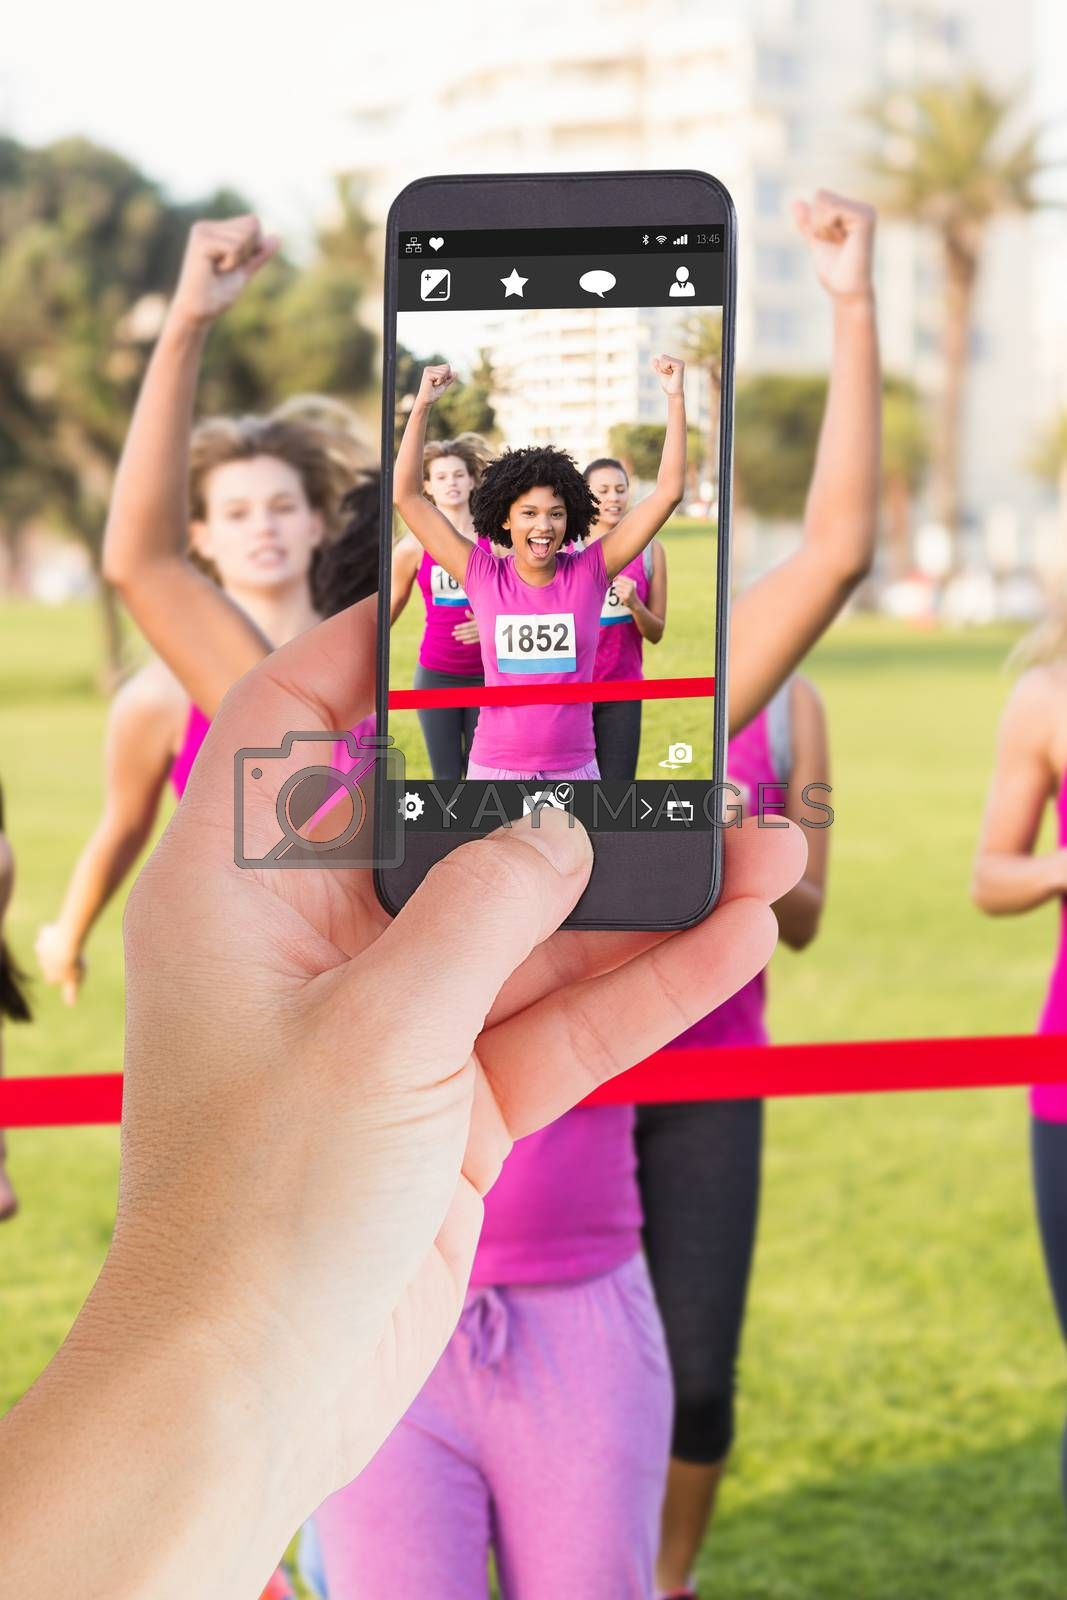 Female hand holding a smartphone against cheering young woman winning breast cancer marathon